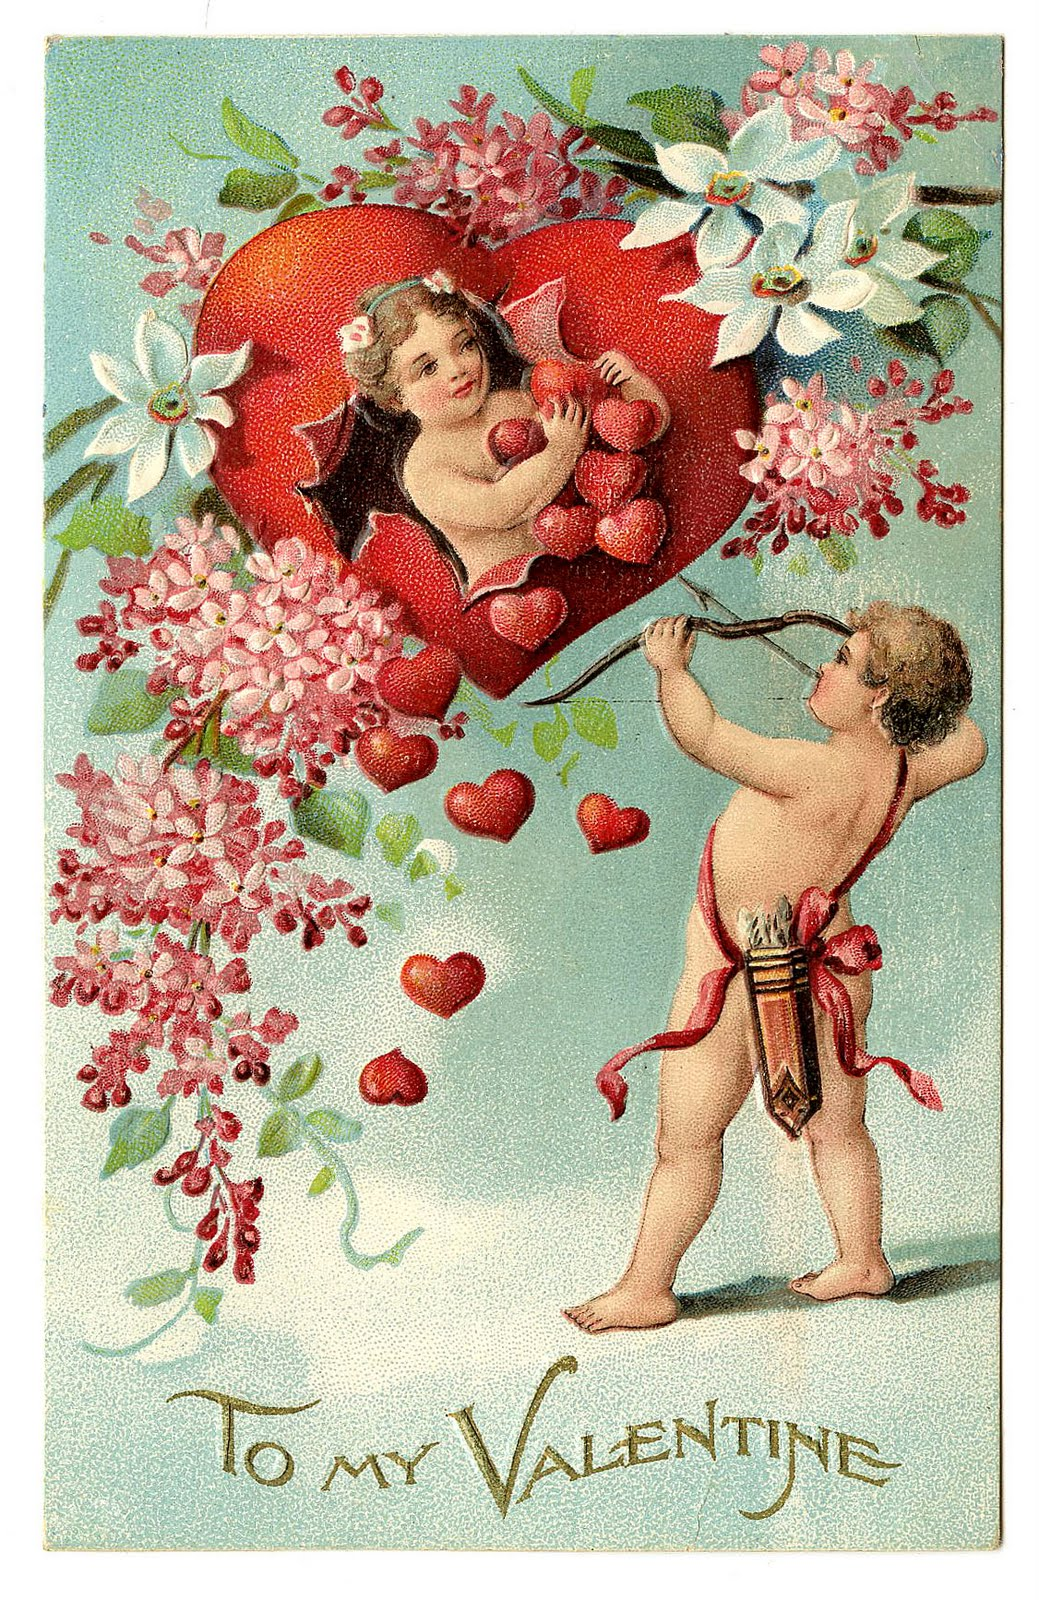 Leaping Frog Designs To My Valentine Vintage Free Post